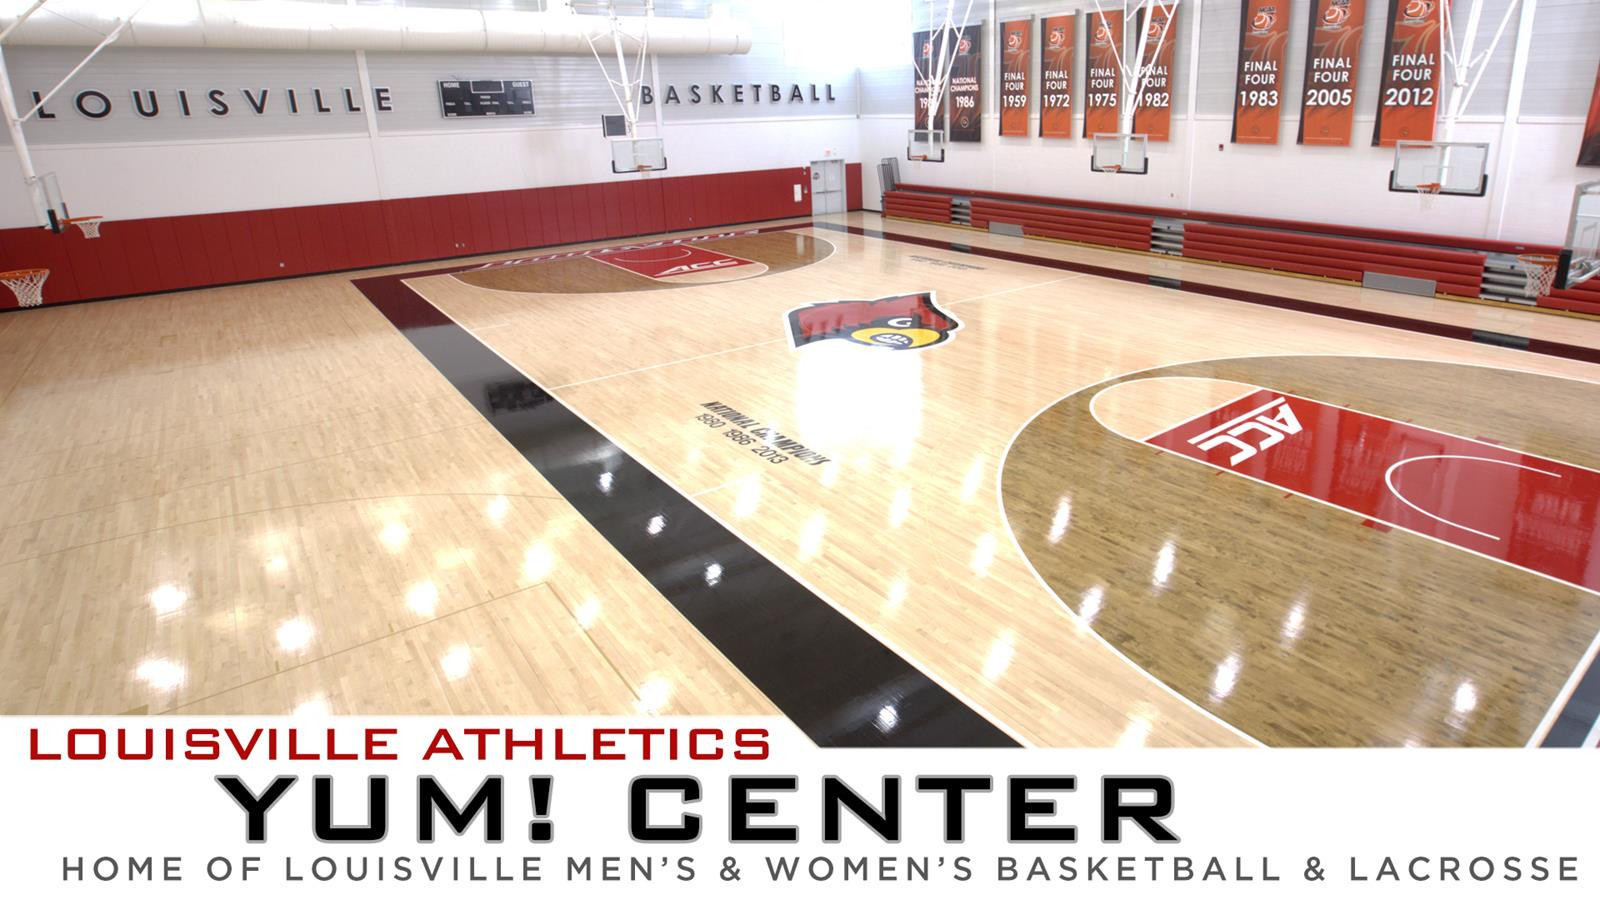 Basketball Hardwood Floor Cost Of Yum Center Facilities University Of Louisville Regarding View Full Image